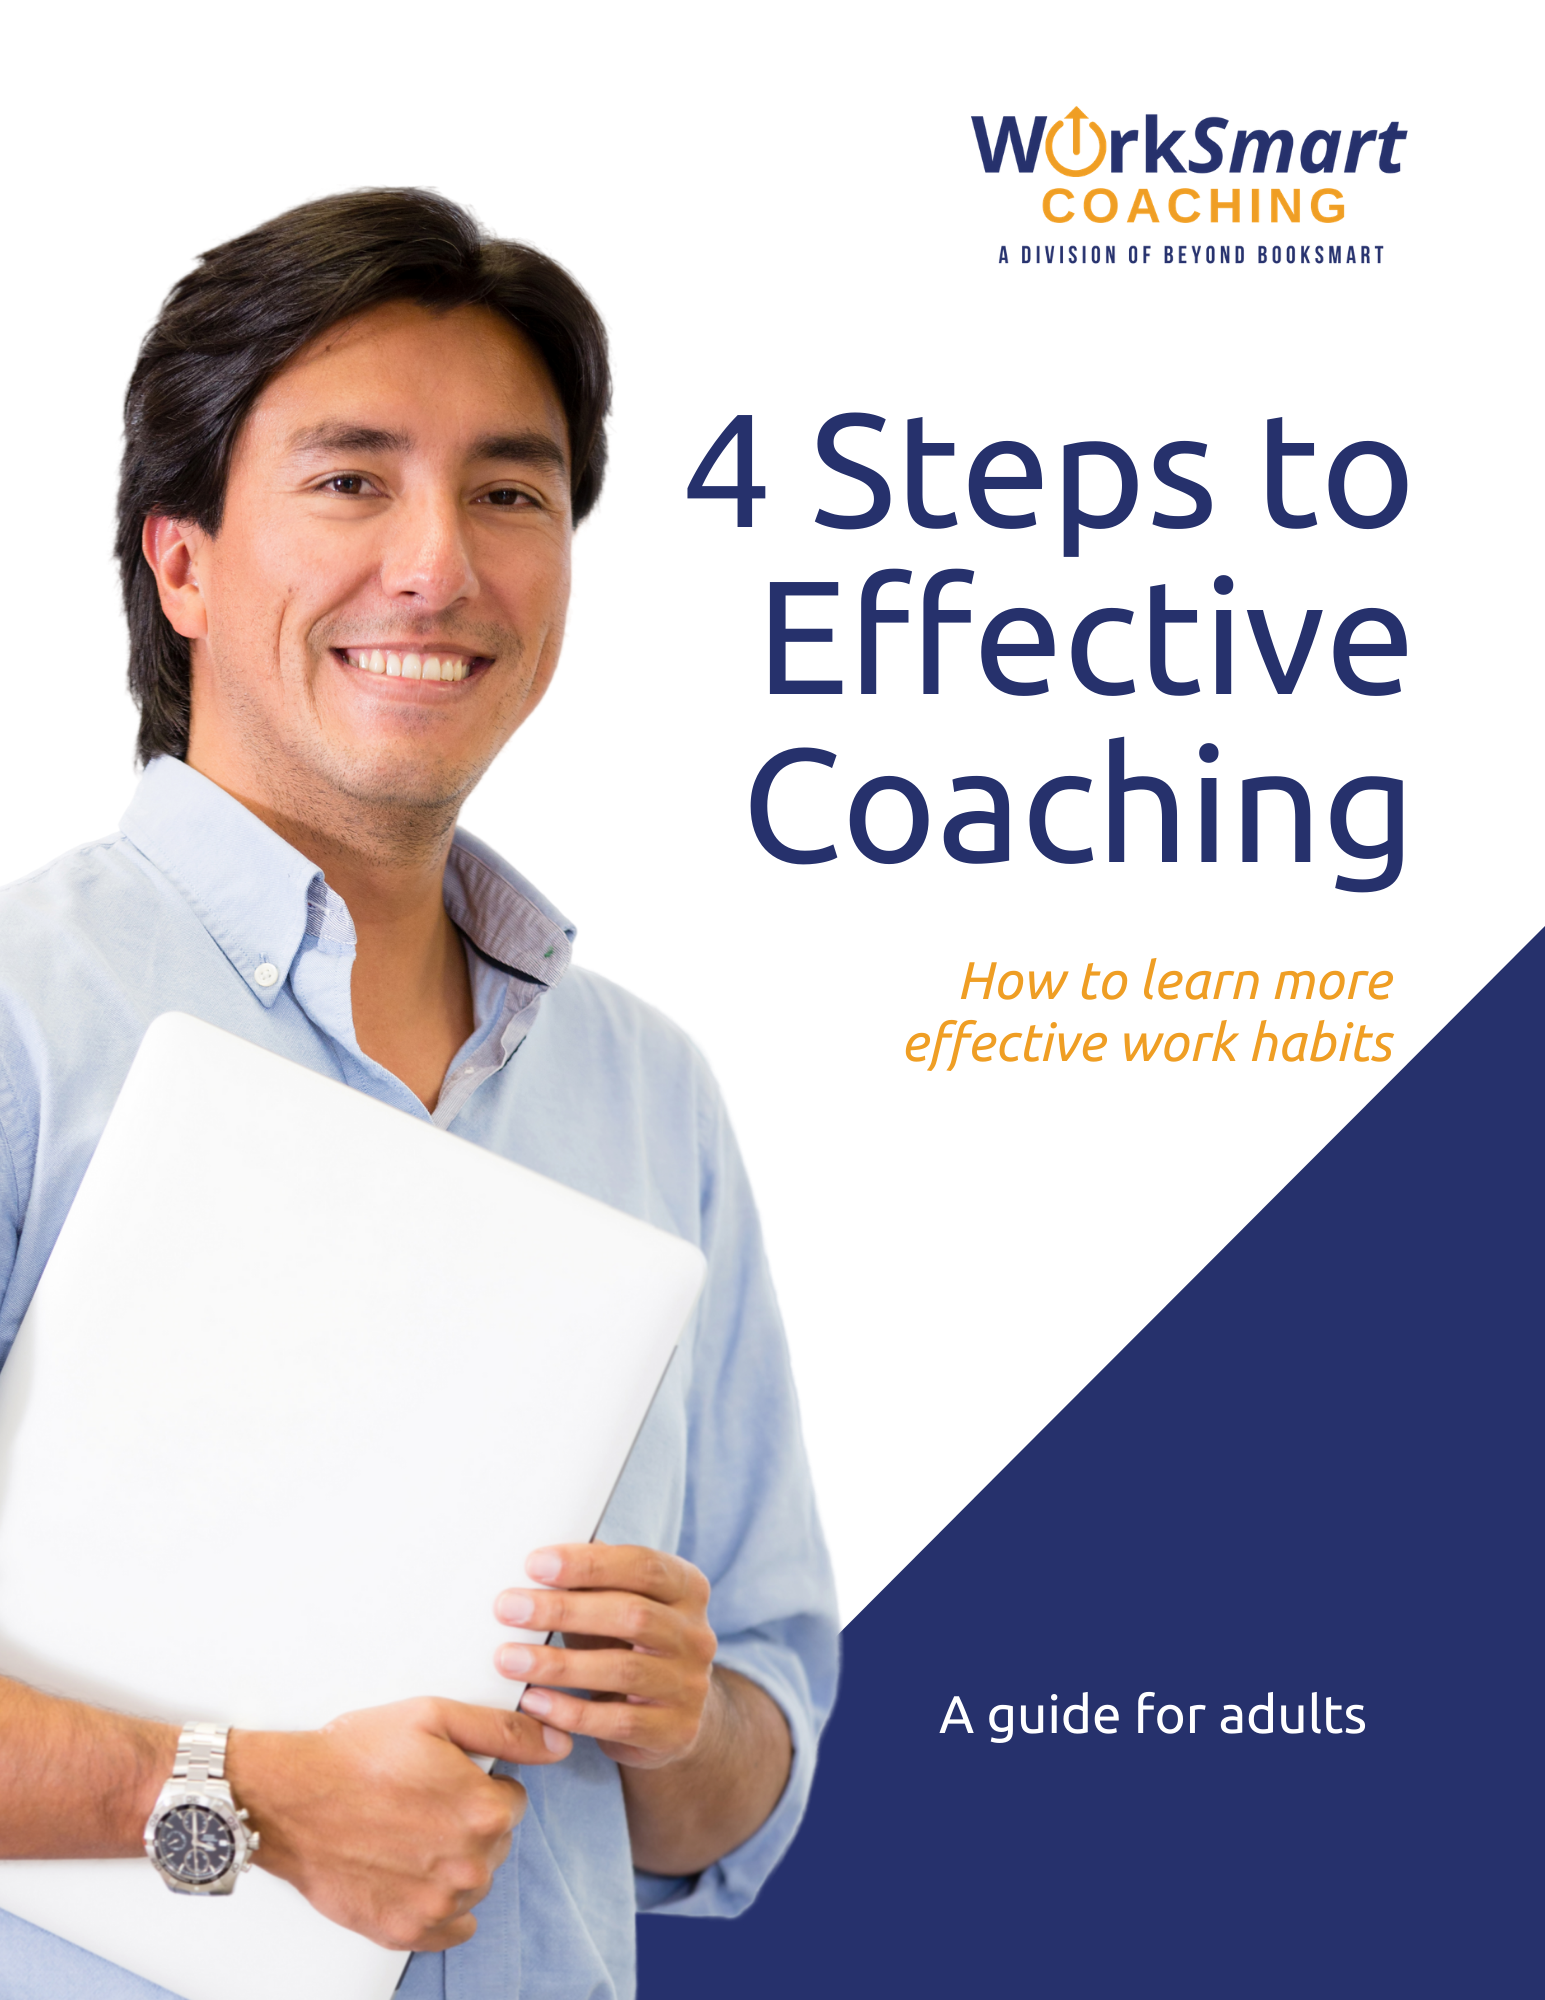 WorkSmart 4 Steps to Effective Coaching (1)-1